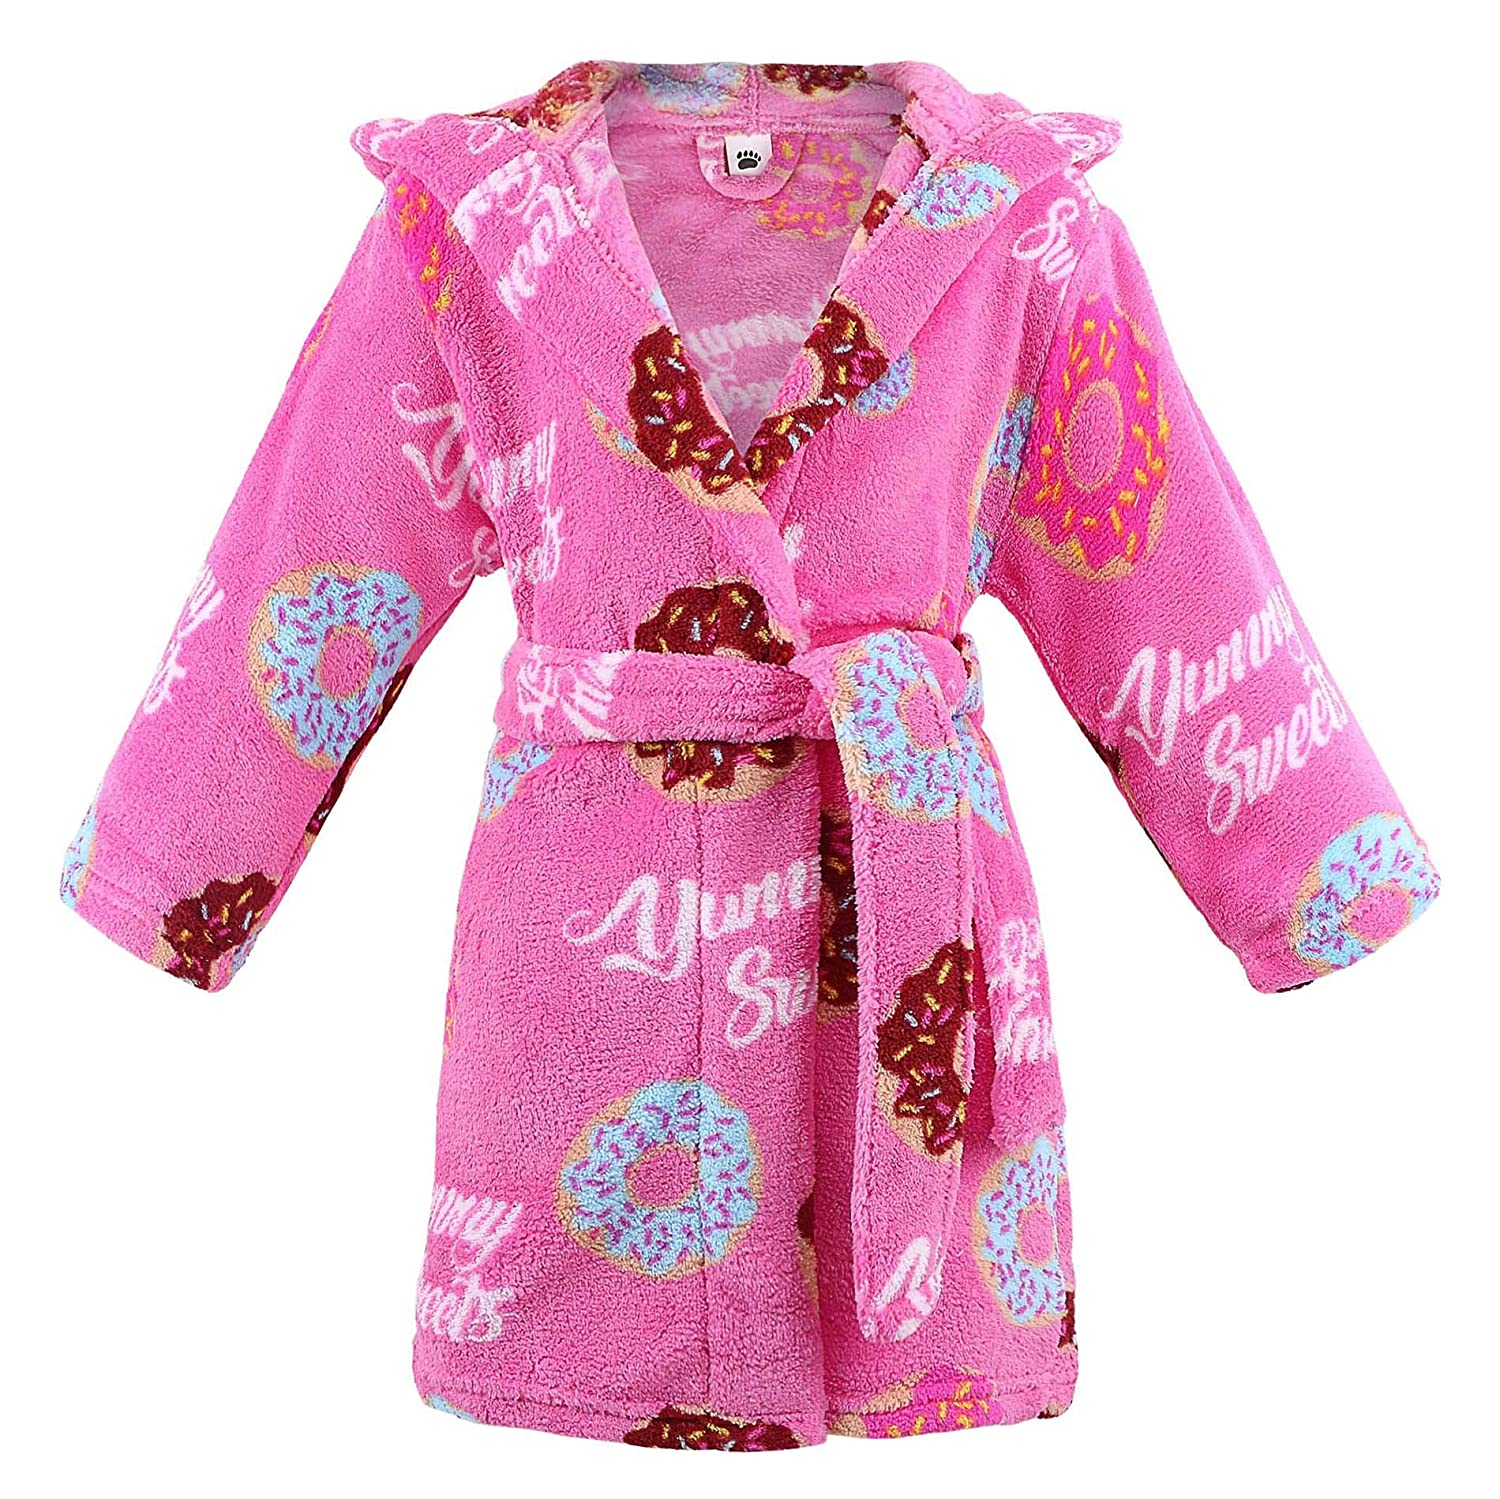 Arctic Paw Kids Robes Boys Girls Children Animal Theme Bathrobes Pool Cover up